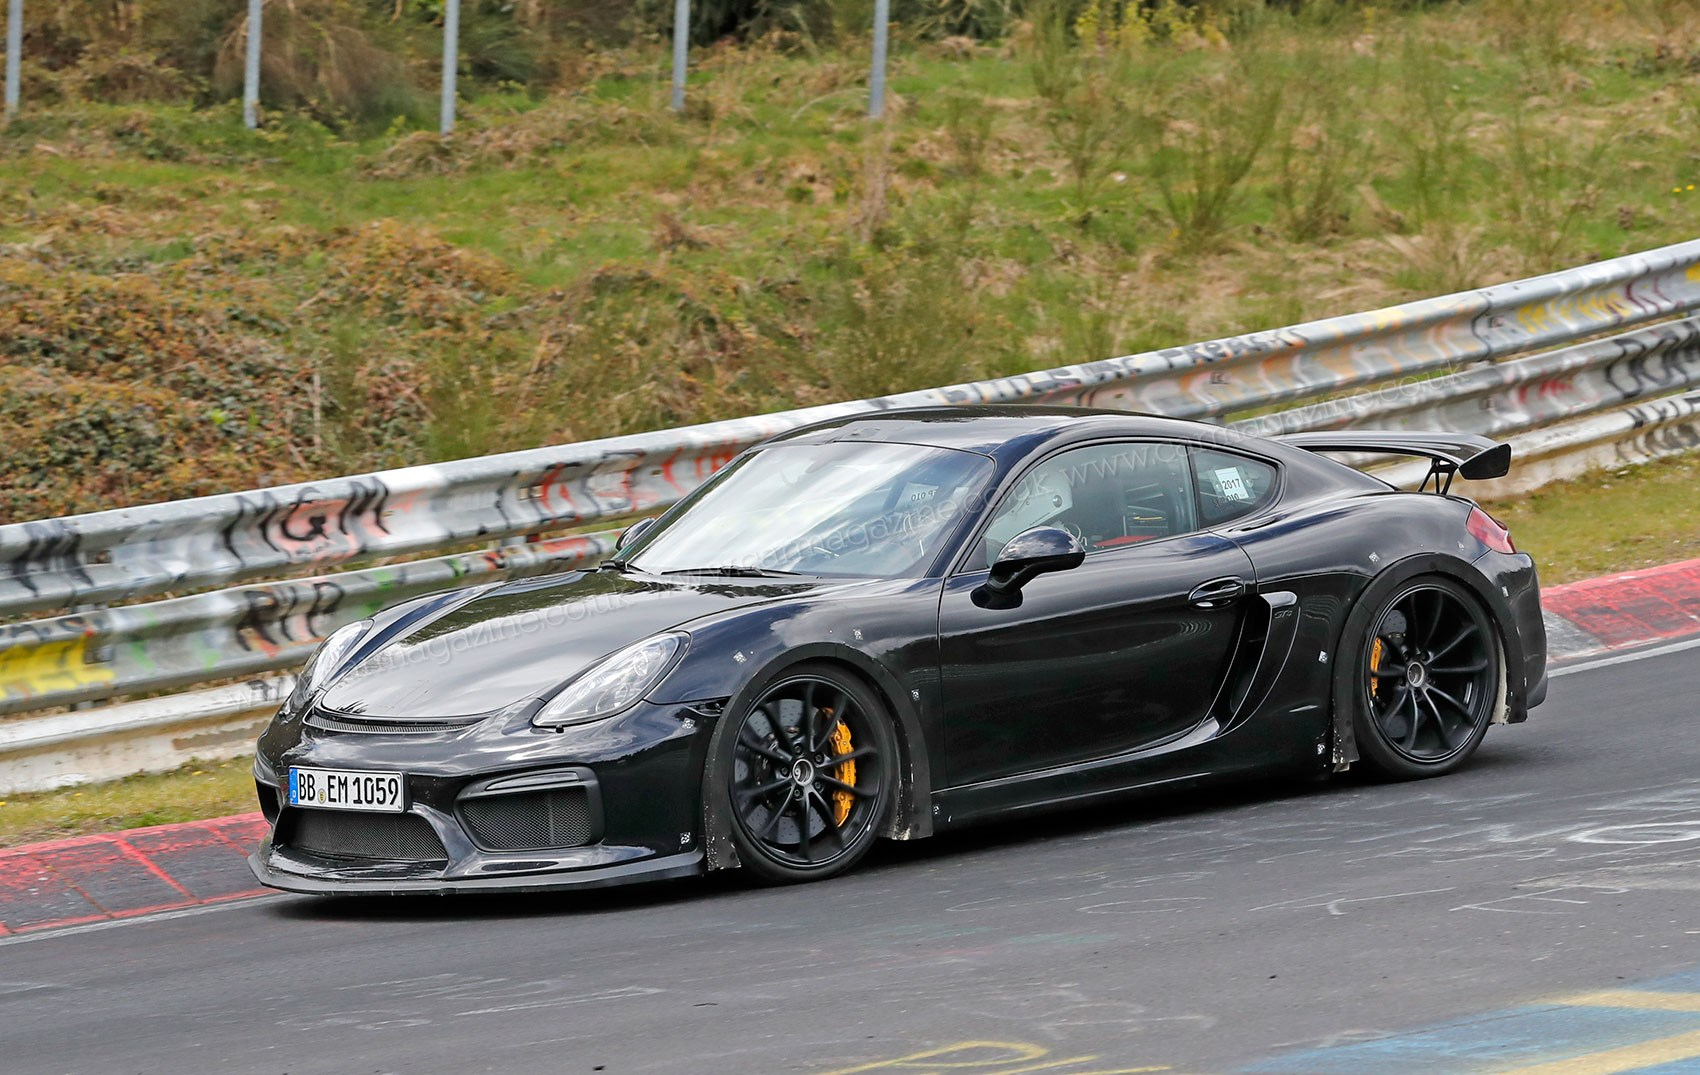 2018 Cayman Gt4 >> Porsche 718 Cayman GT4 spy photos, specs and info by CAR Magazine